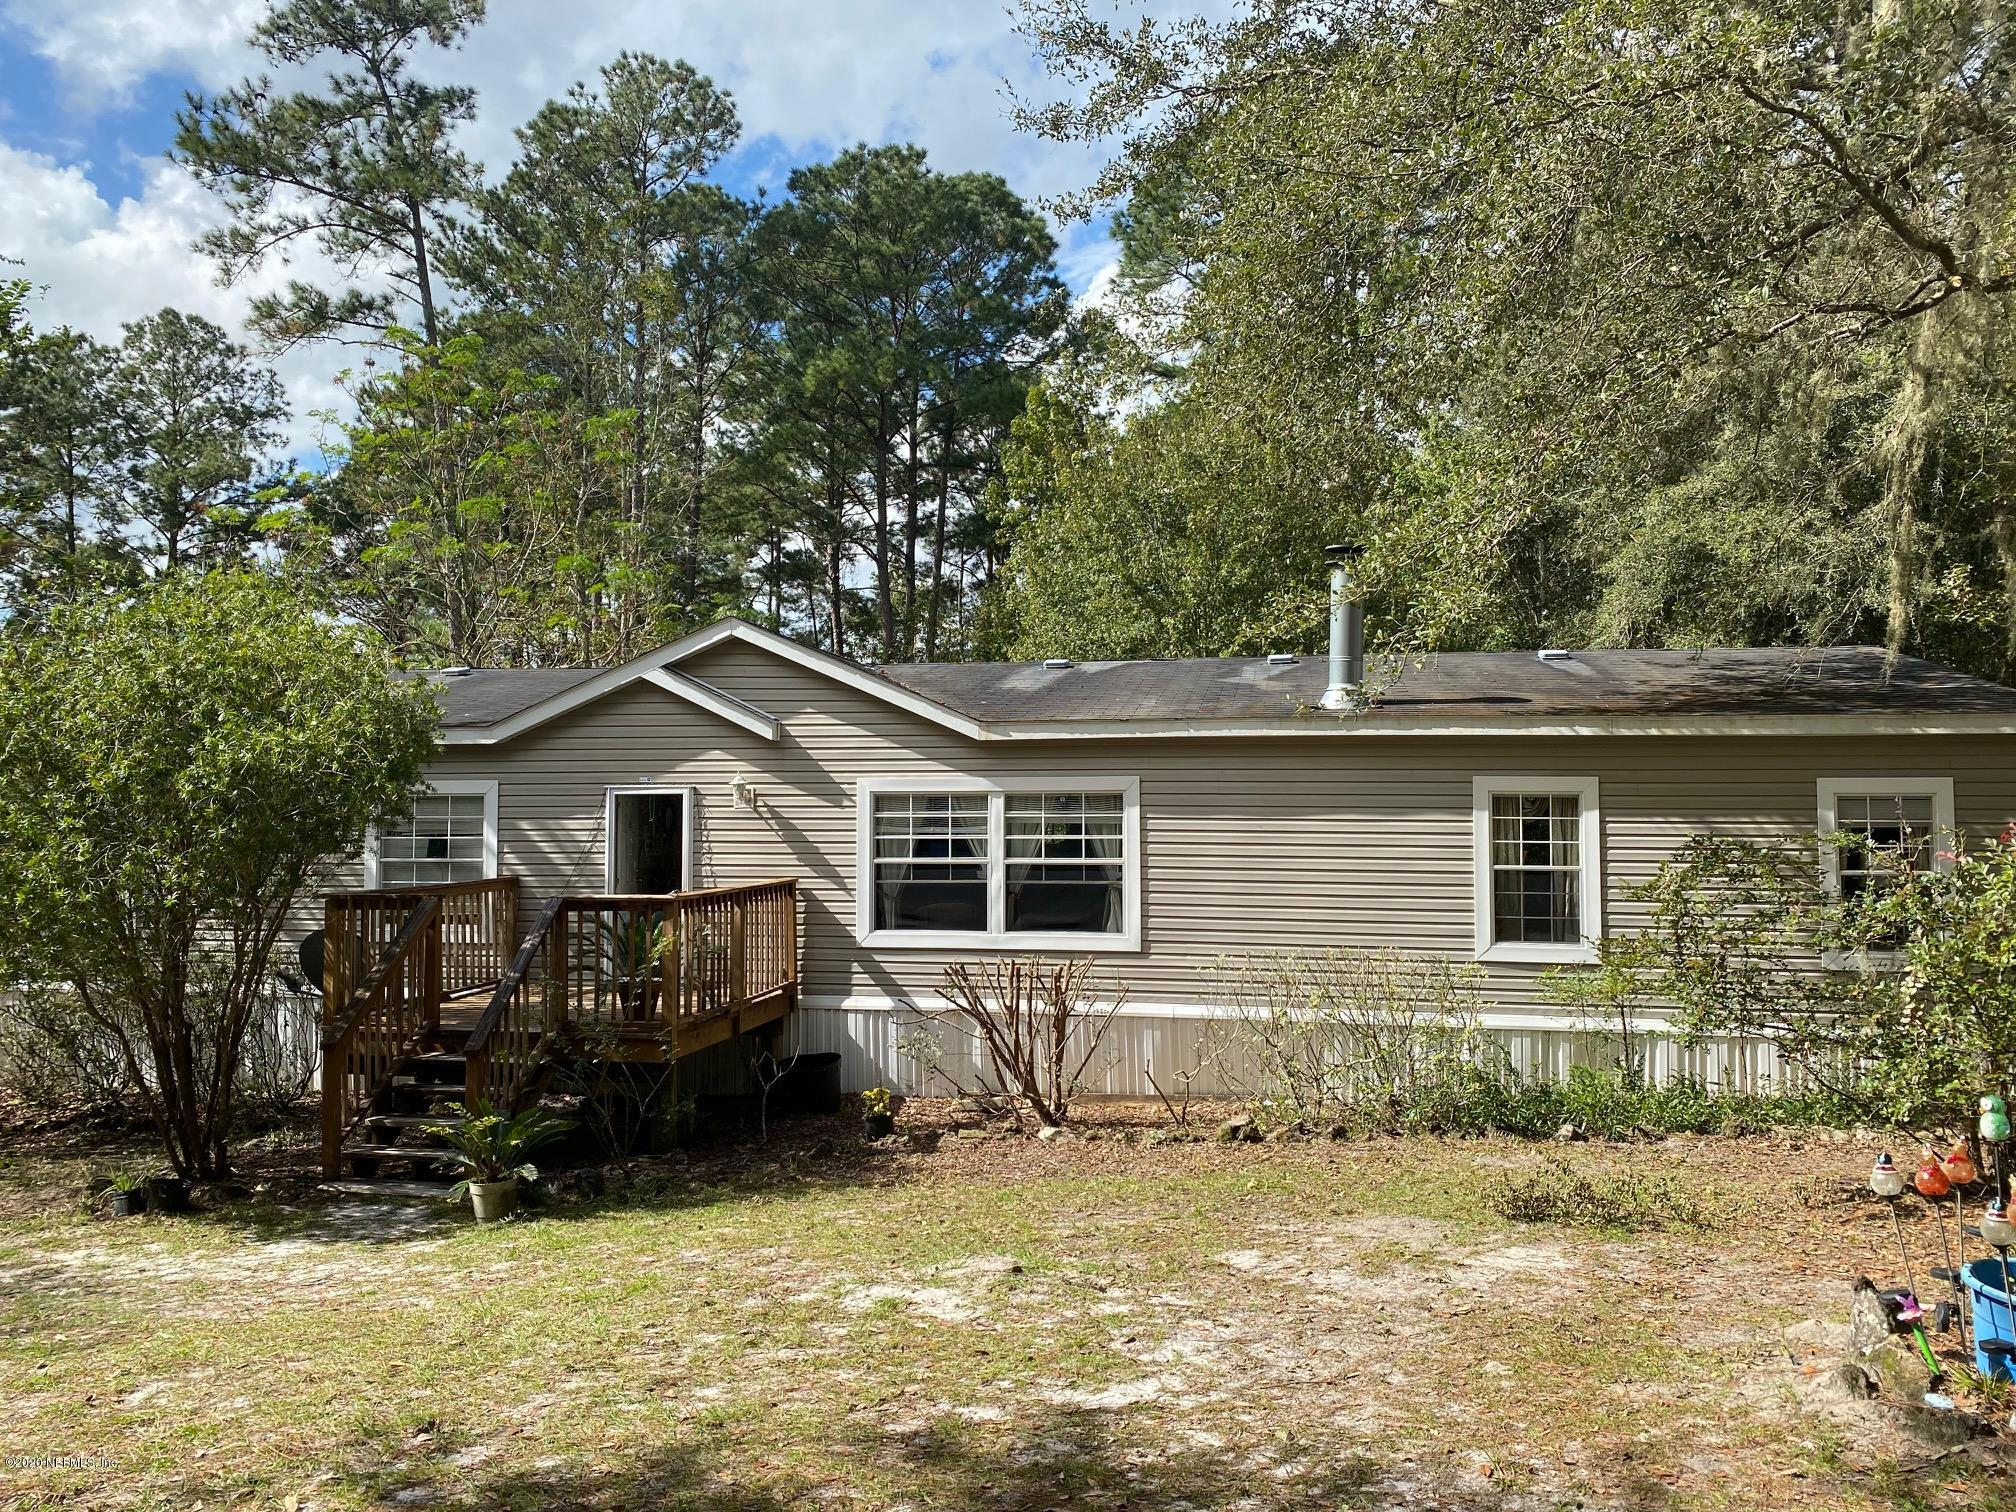 4069 100TH, LAKE BUTLER, FLORIDA 32054, 4 Bedrooms Bedrooms, ,2 BathroomsBathrooms,Residential,For sale,100TH,1082002